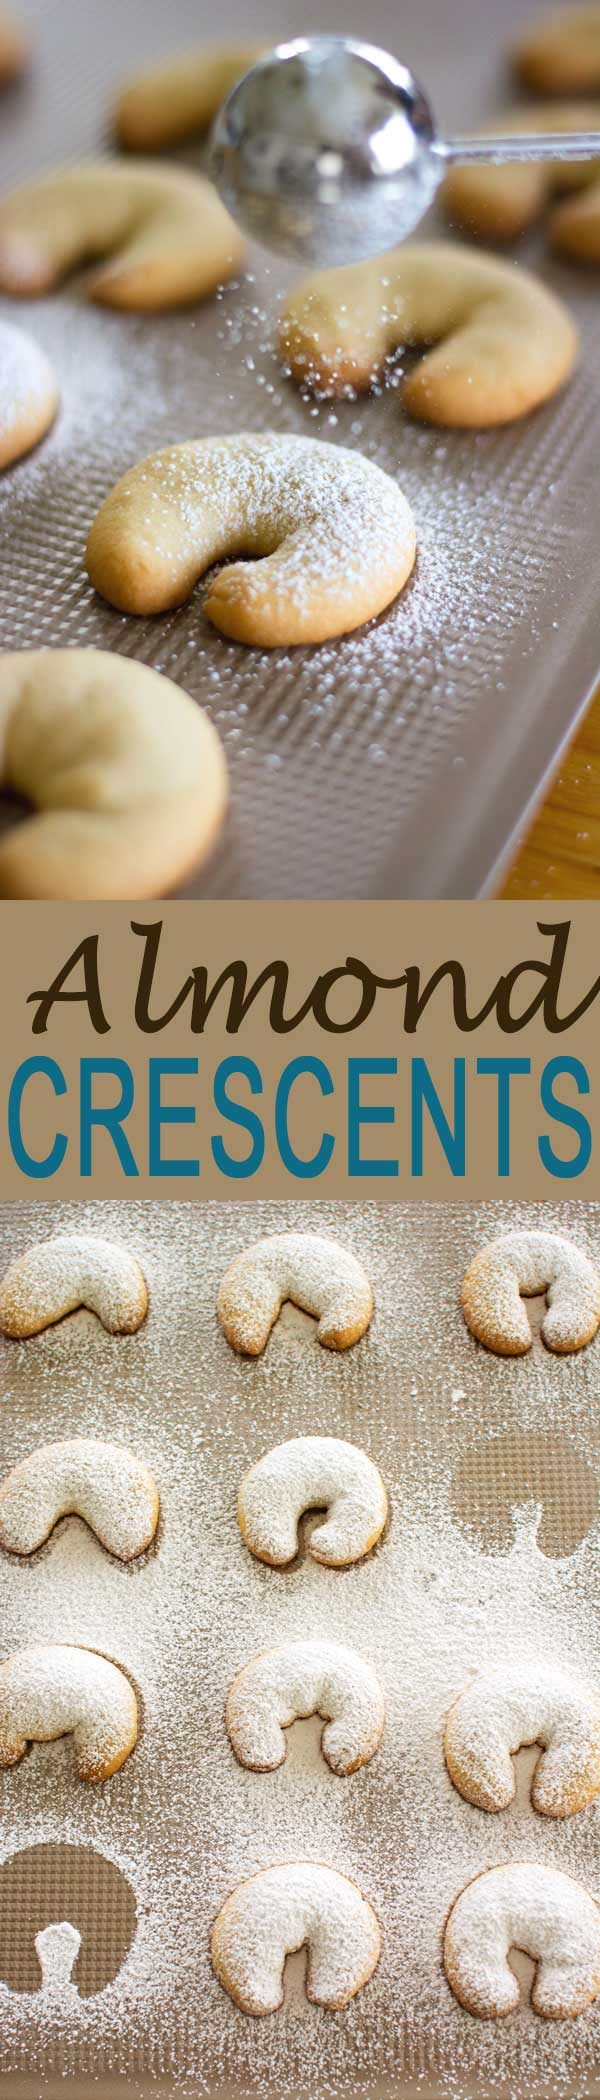 Almond Crescent Cookies (Vanille Kipferl) are popular German Christmas cookies dusted with powdered sugar. Best dessert made during the holidays with family! #christmascookies